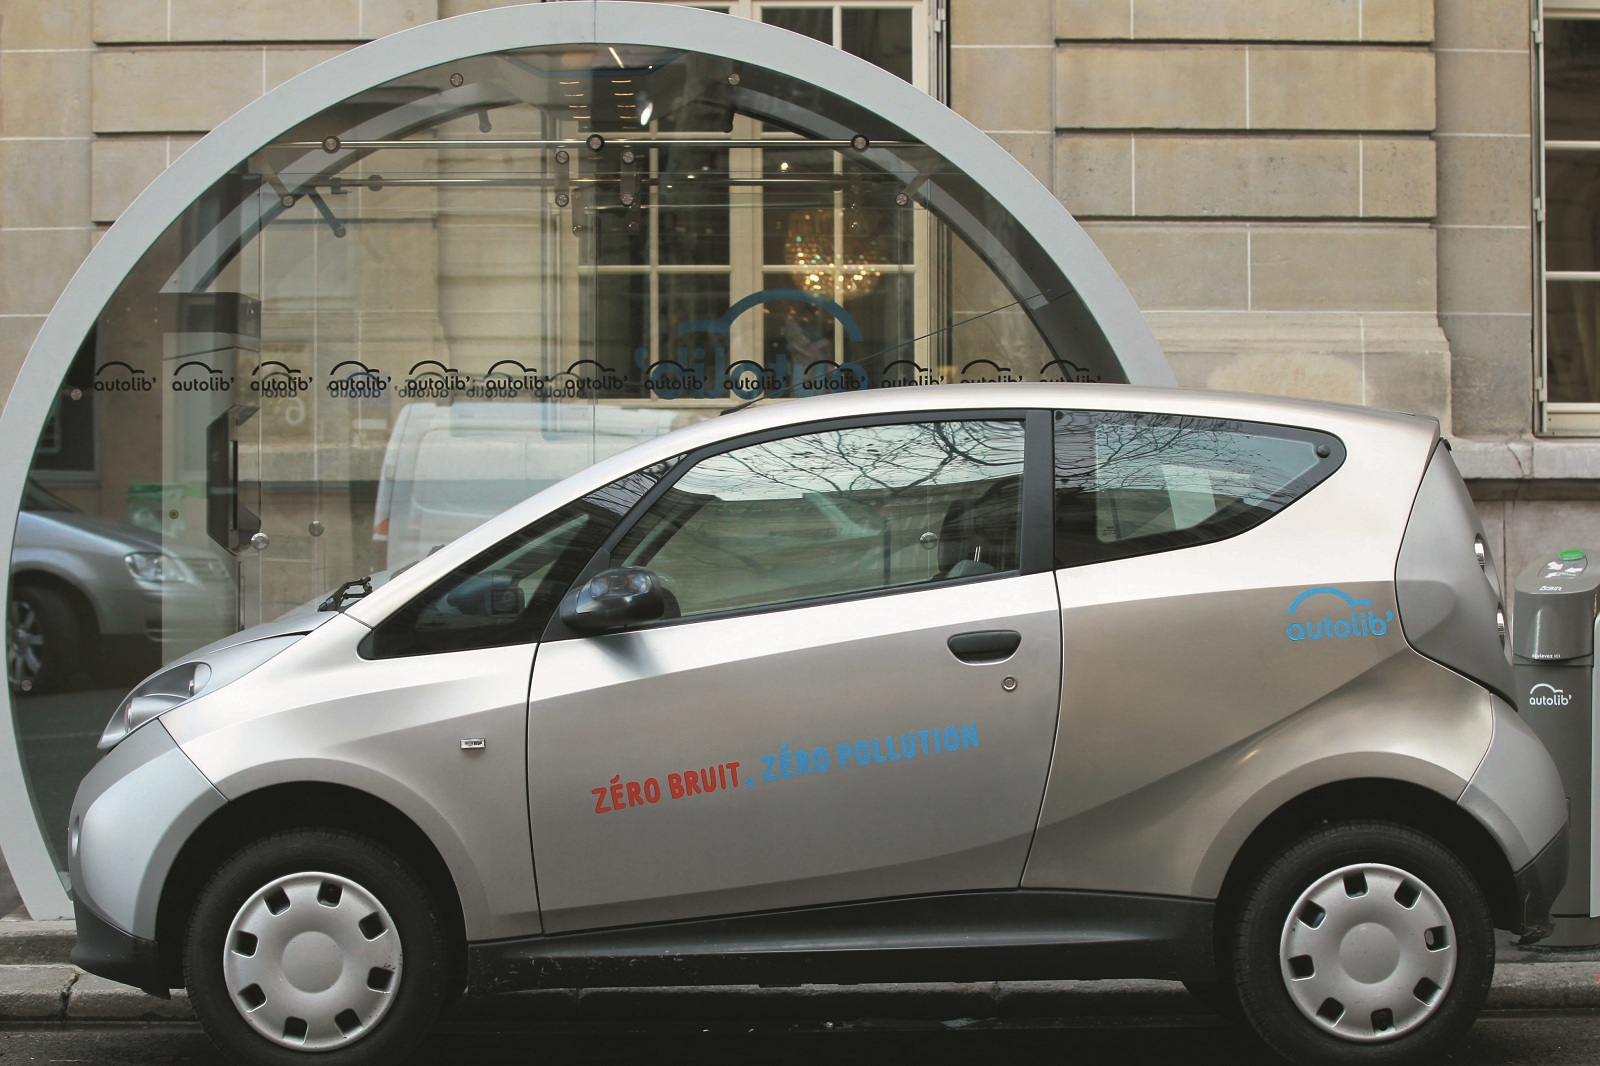 Autolib Electric Car Sharing Service Expands Into London